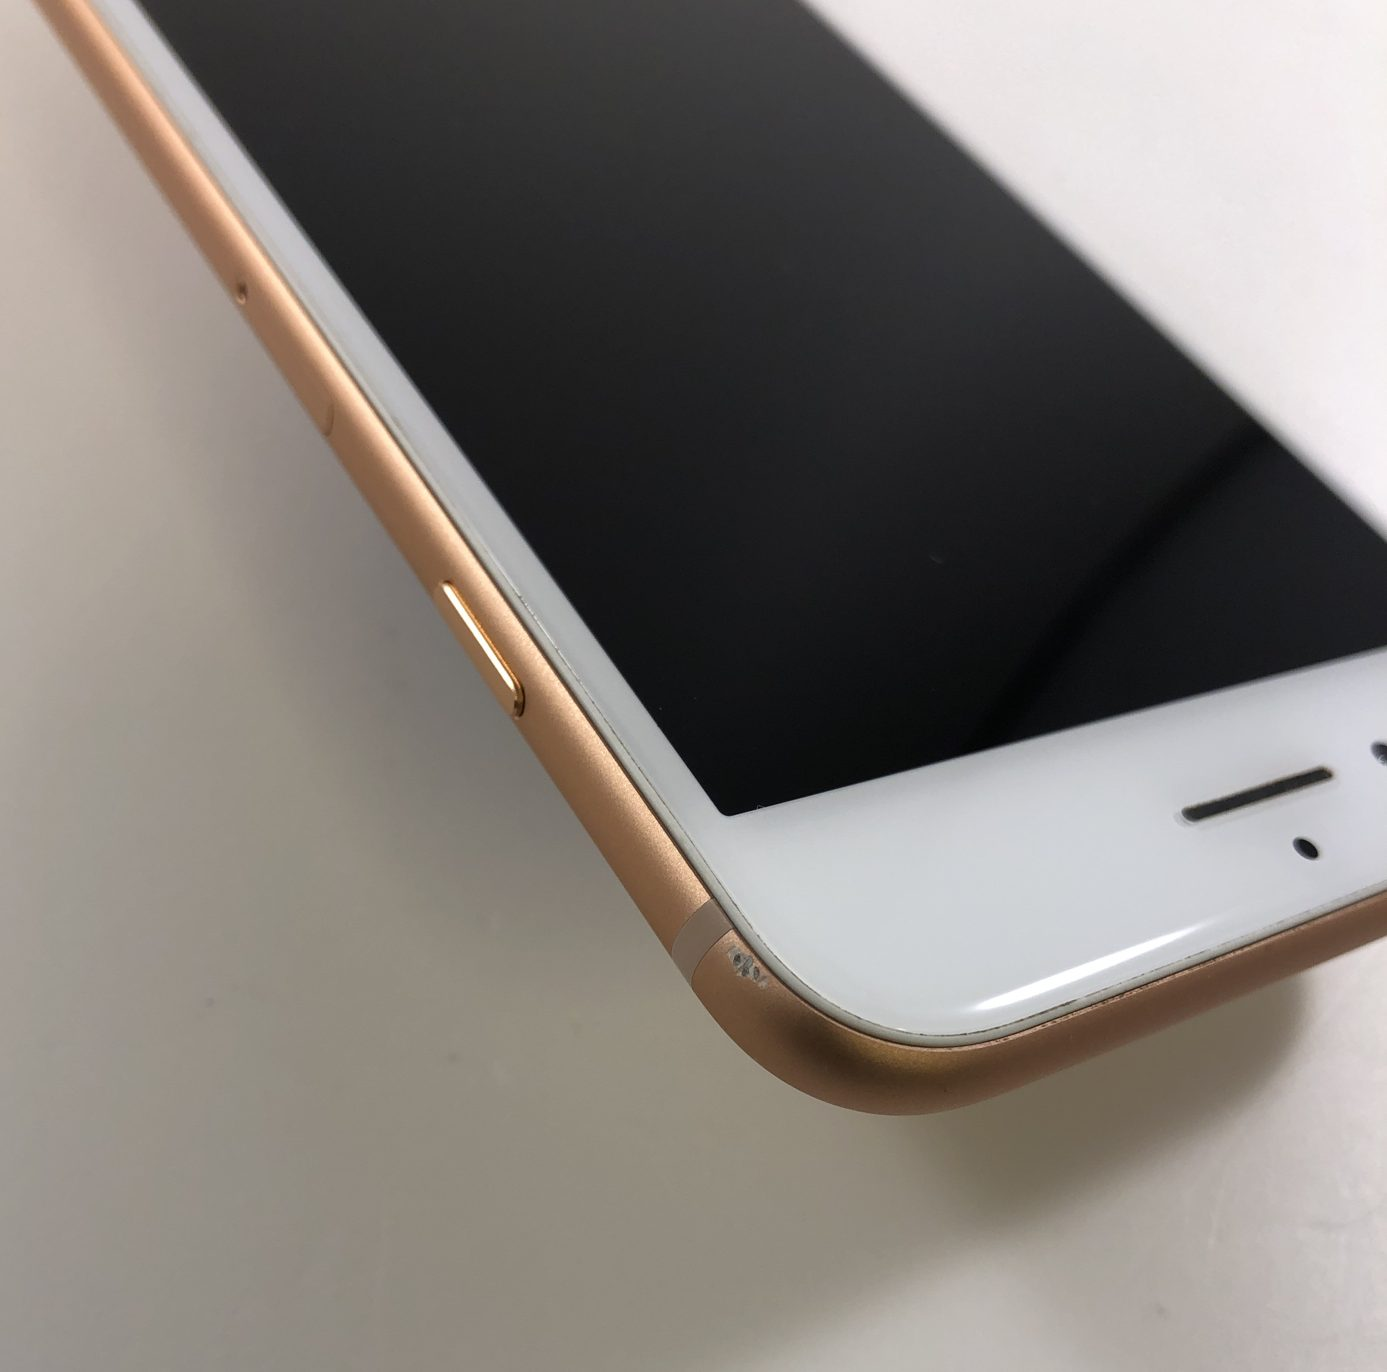 iPhone 8 Plus 64GB, 64GB, Gold, bild 4